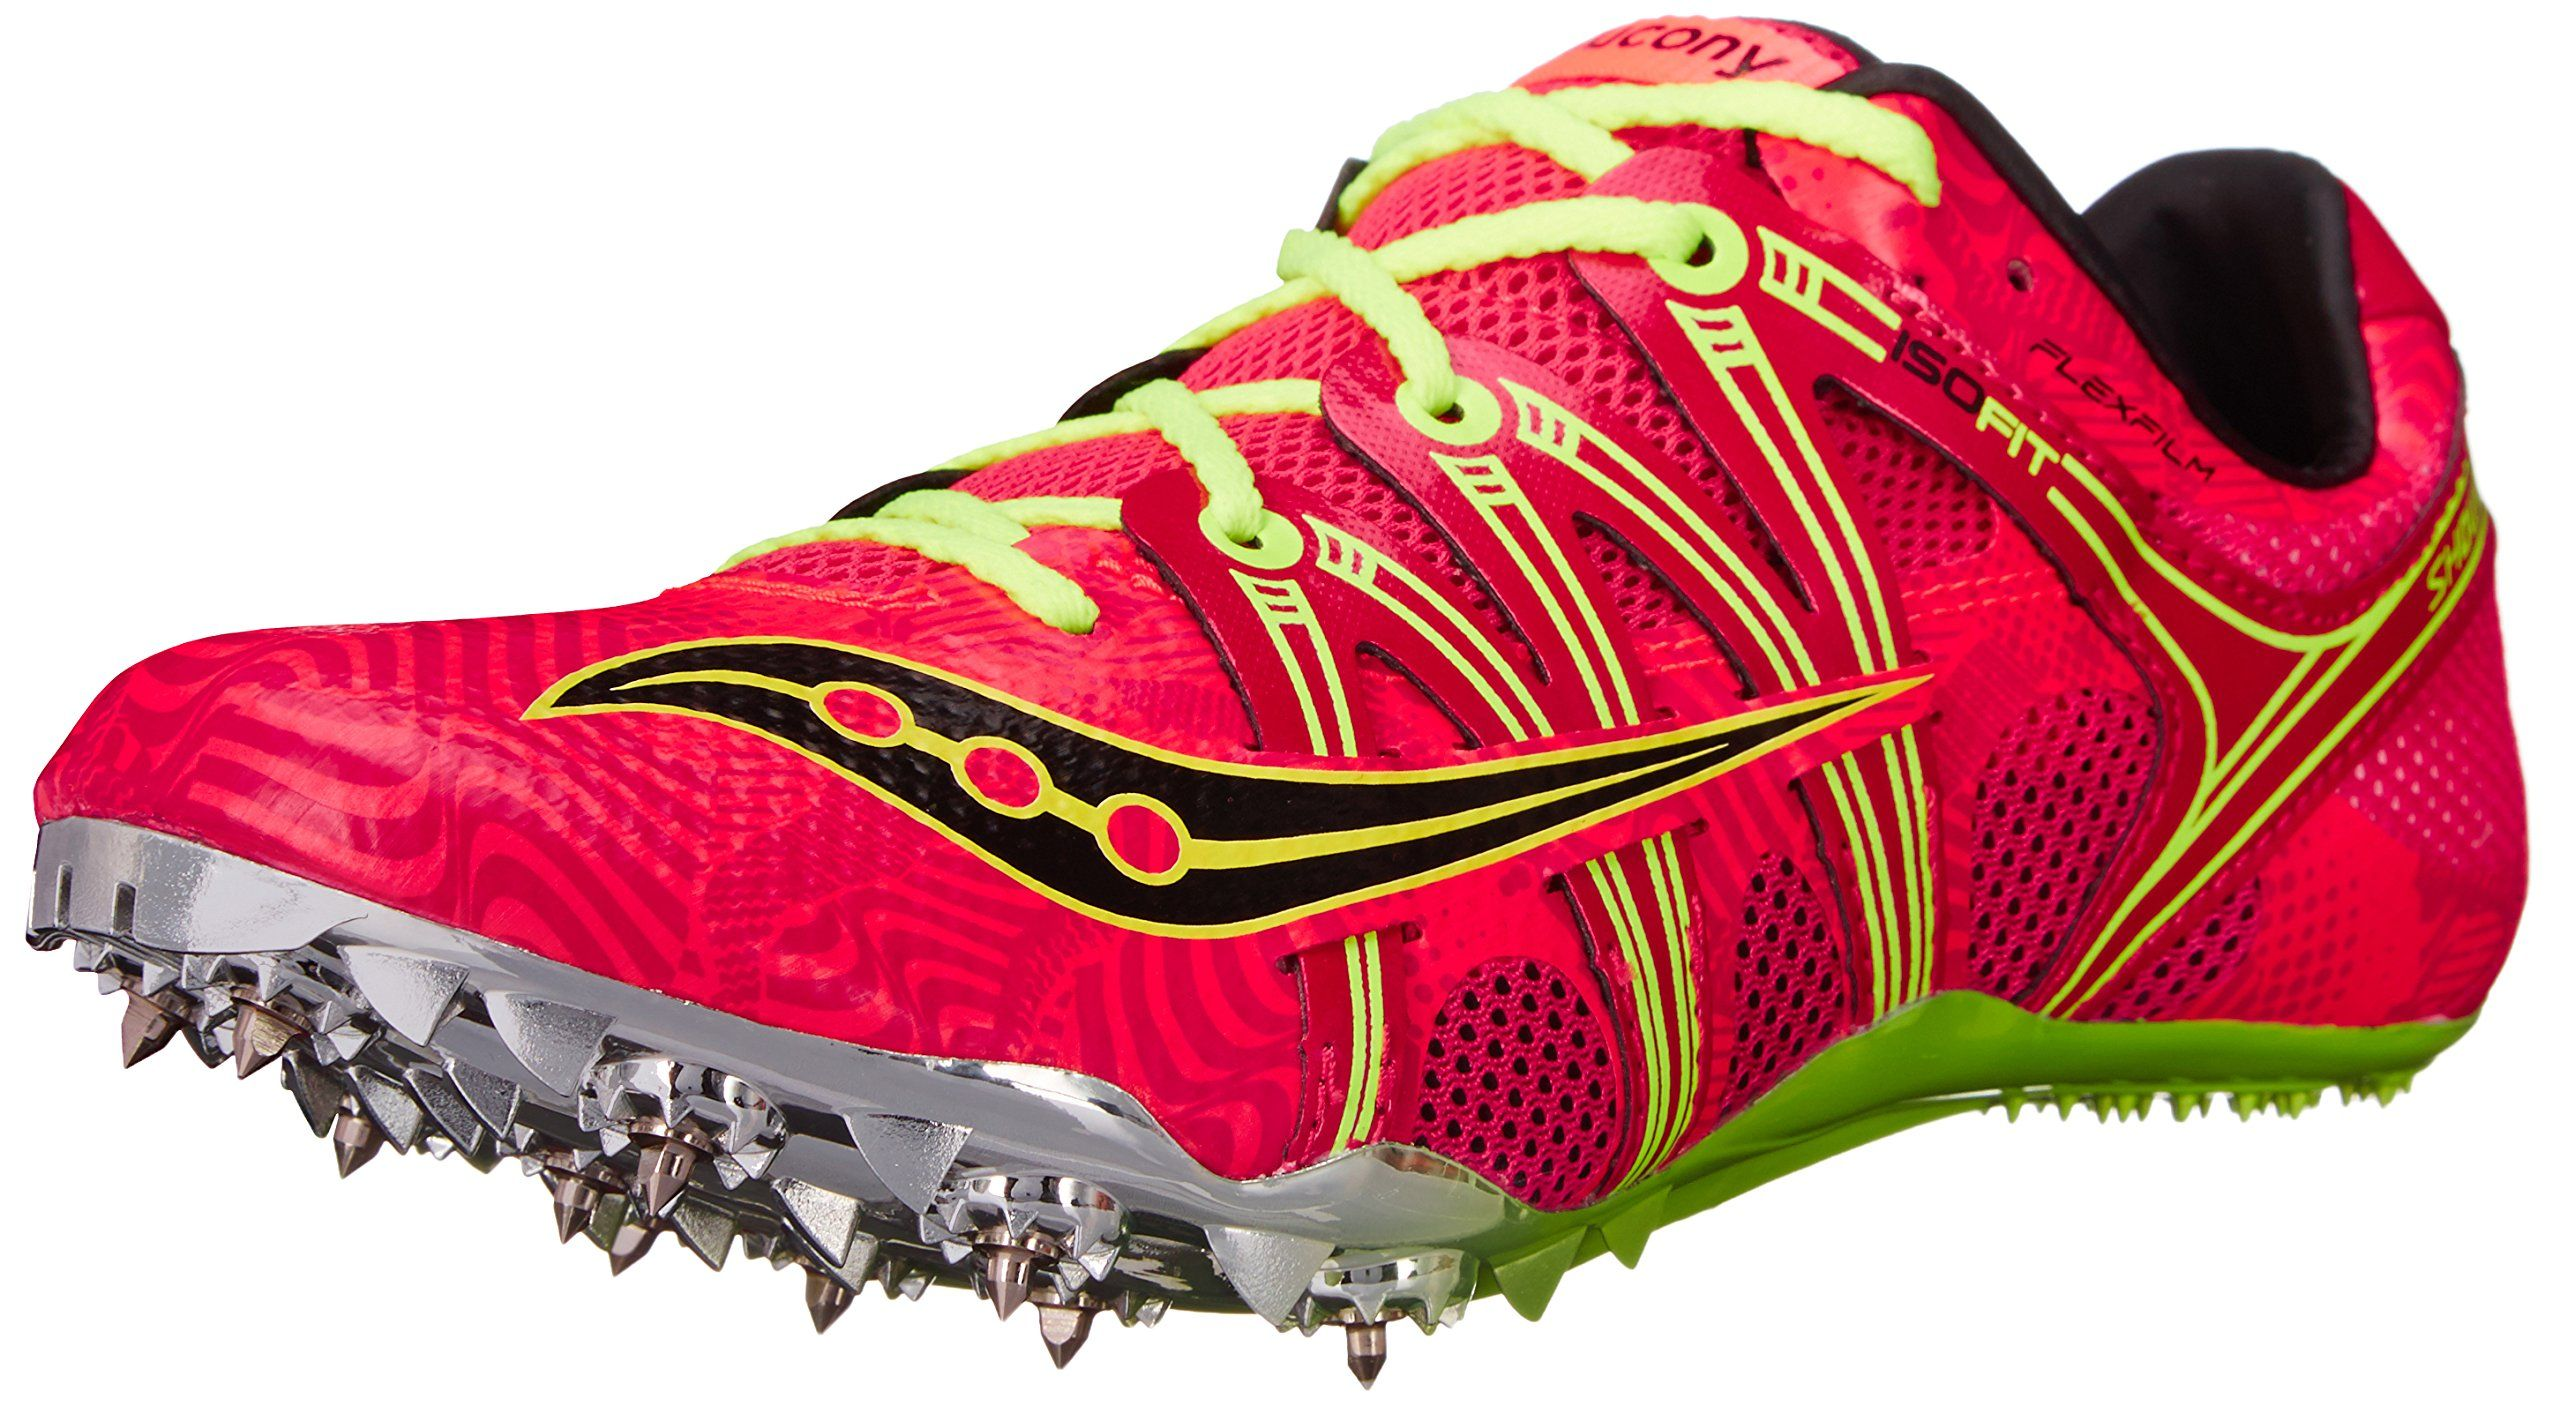 Saucony Women's Showdown Spike Shoe, Coral/Citron, 11 M US. Lightweight sprint spike featuring ISOFIT lacing system and high-performance fit.